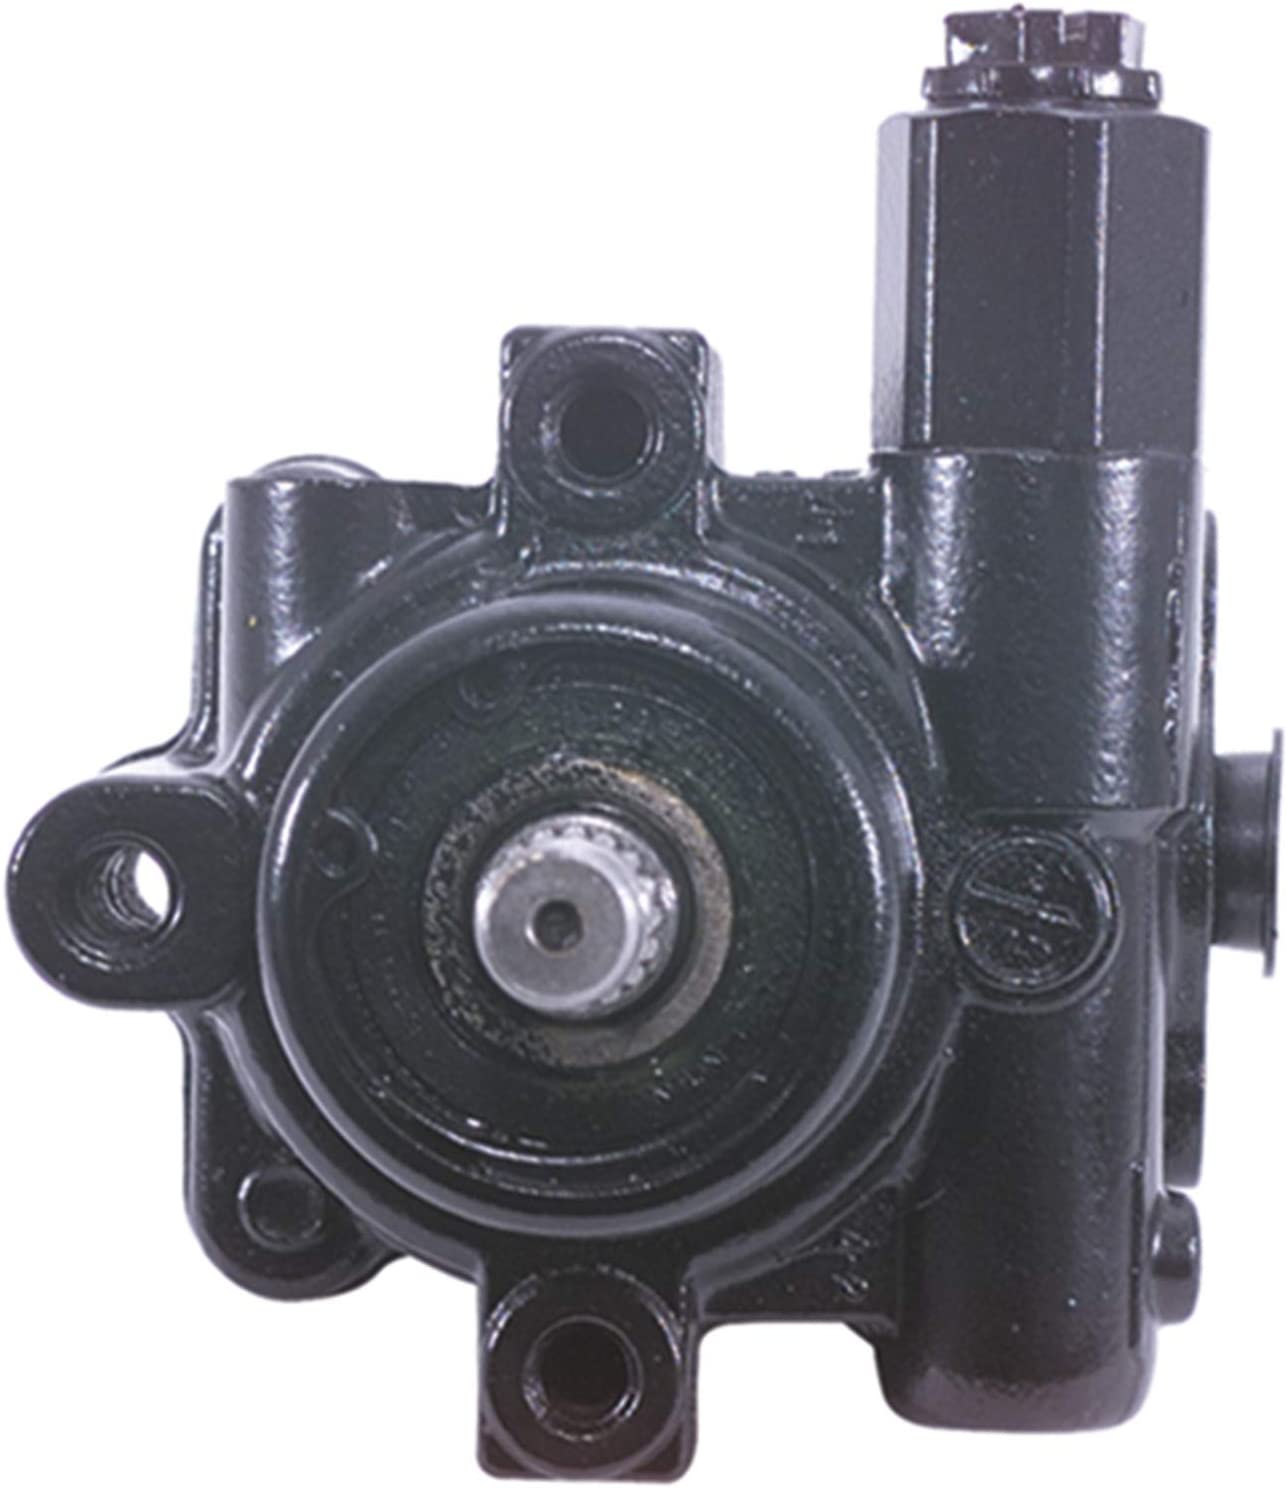 Cardone 21-5028 Remanufactured Power Pump Steering Max 67% OFF without Reser Max 55% OFF